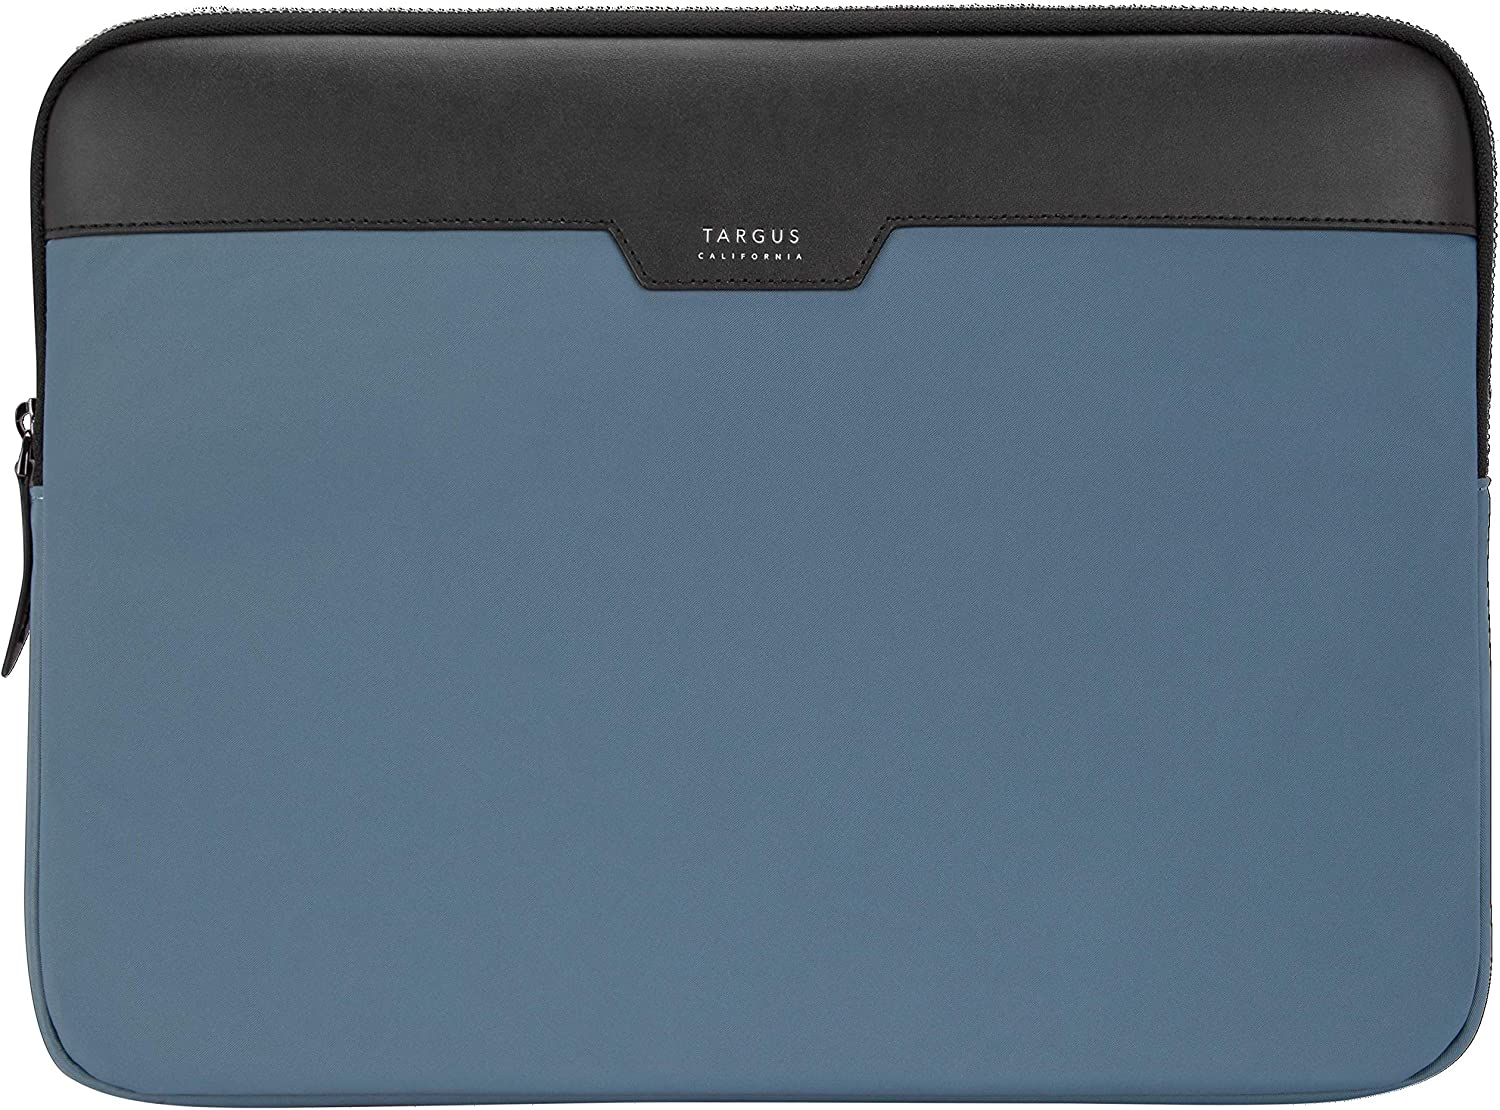 Targus Newport Modern Style Sleeve with Durable Water-Repellent Nylon, Back Zip Pocket Pouch, Protective Slipcase fits 11-12-Inch Laptop/Notebook, Blue (TSS100102GL)